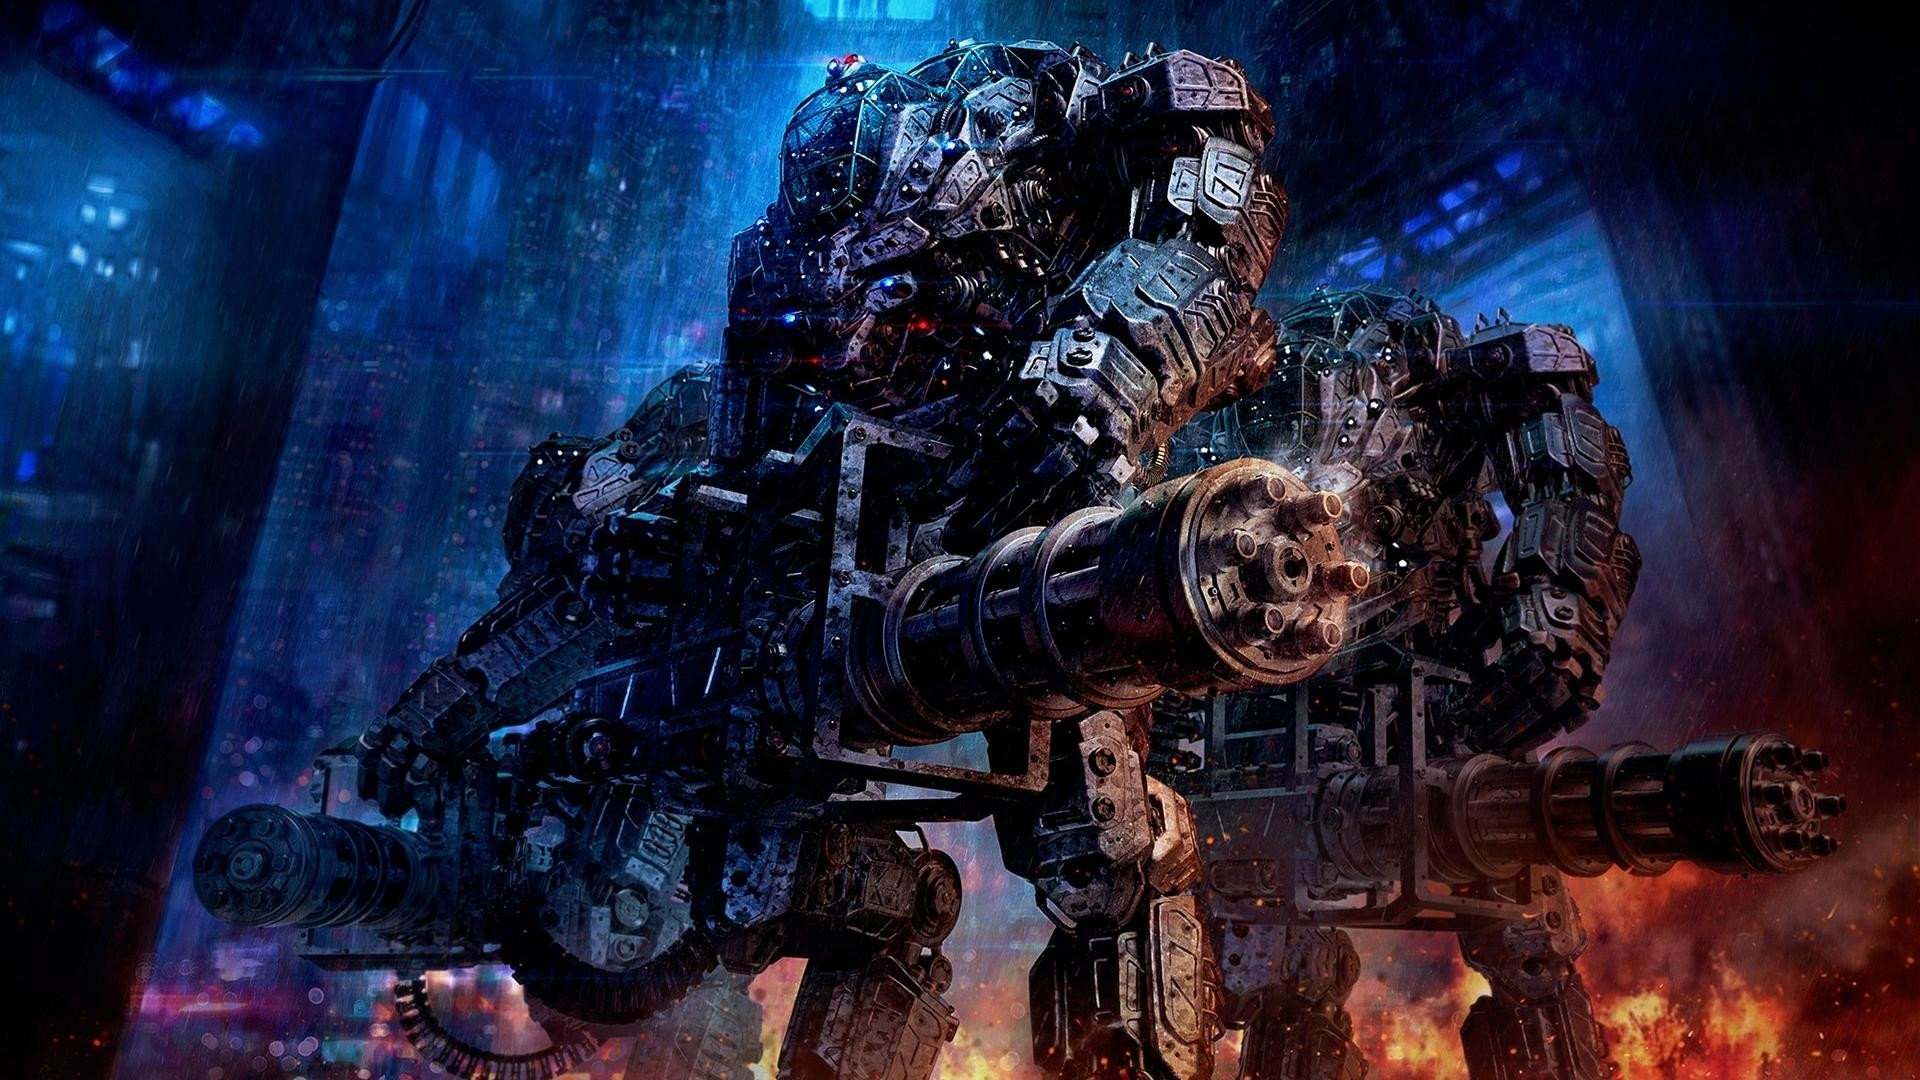 wallpaper.wiki-Awesome-Robot-Image-PIC-WPD001082